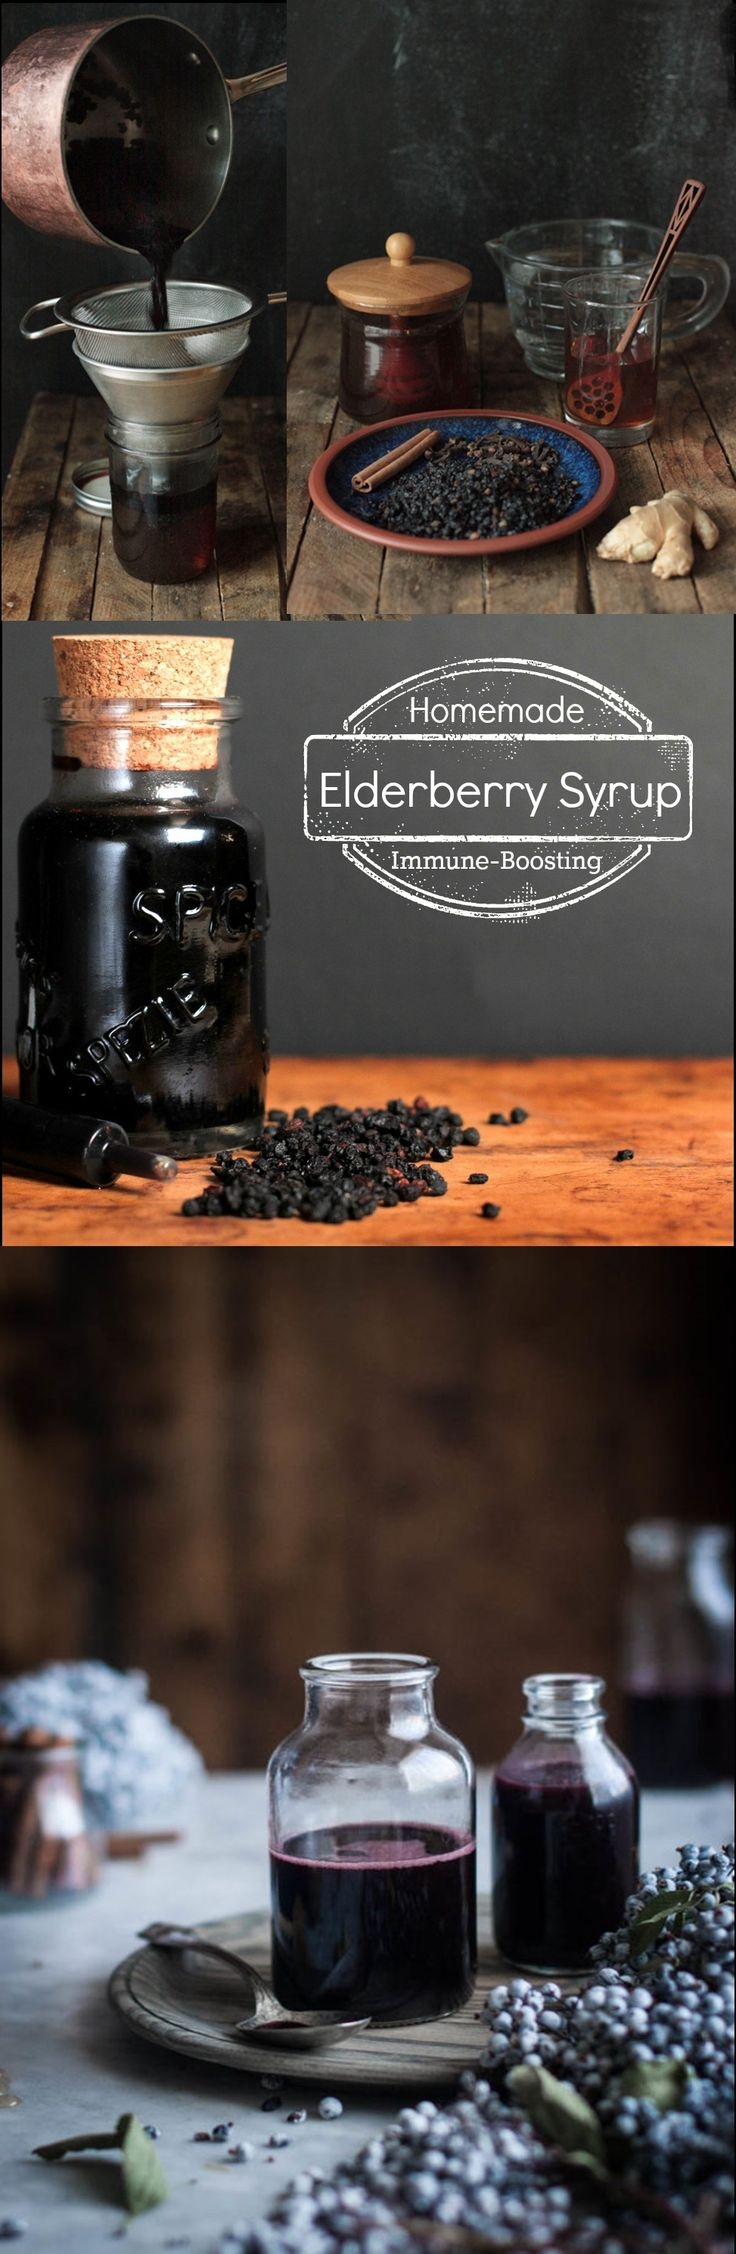 NEVER FALL SICK AGAIN! THE ELDERBERRY SYRUP RECIPE THAT CAN CURE A COLD OR FLU IN 3 DAYSv - Book For Healthy Life